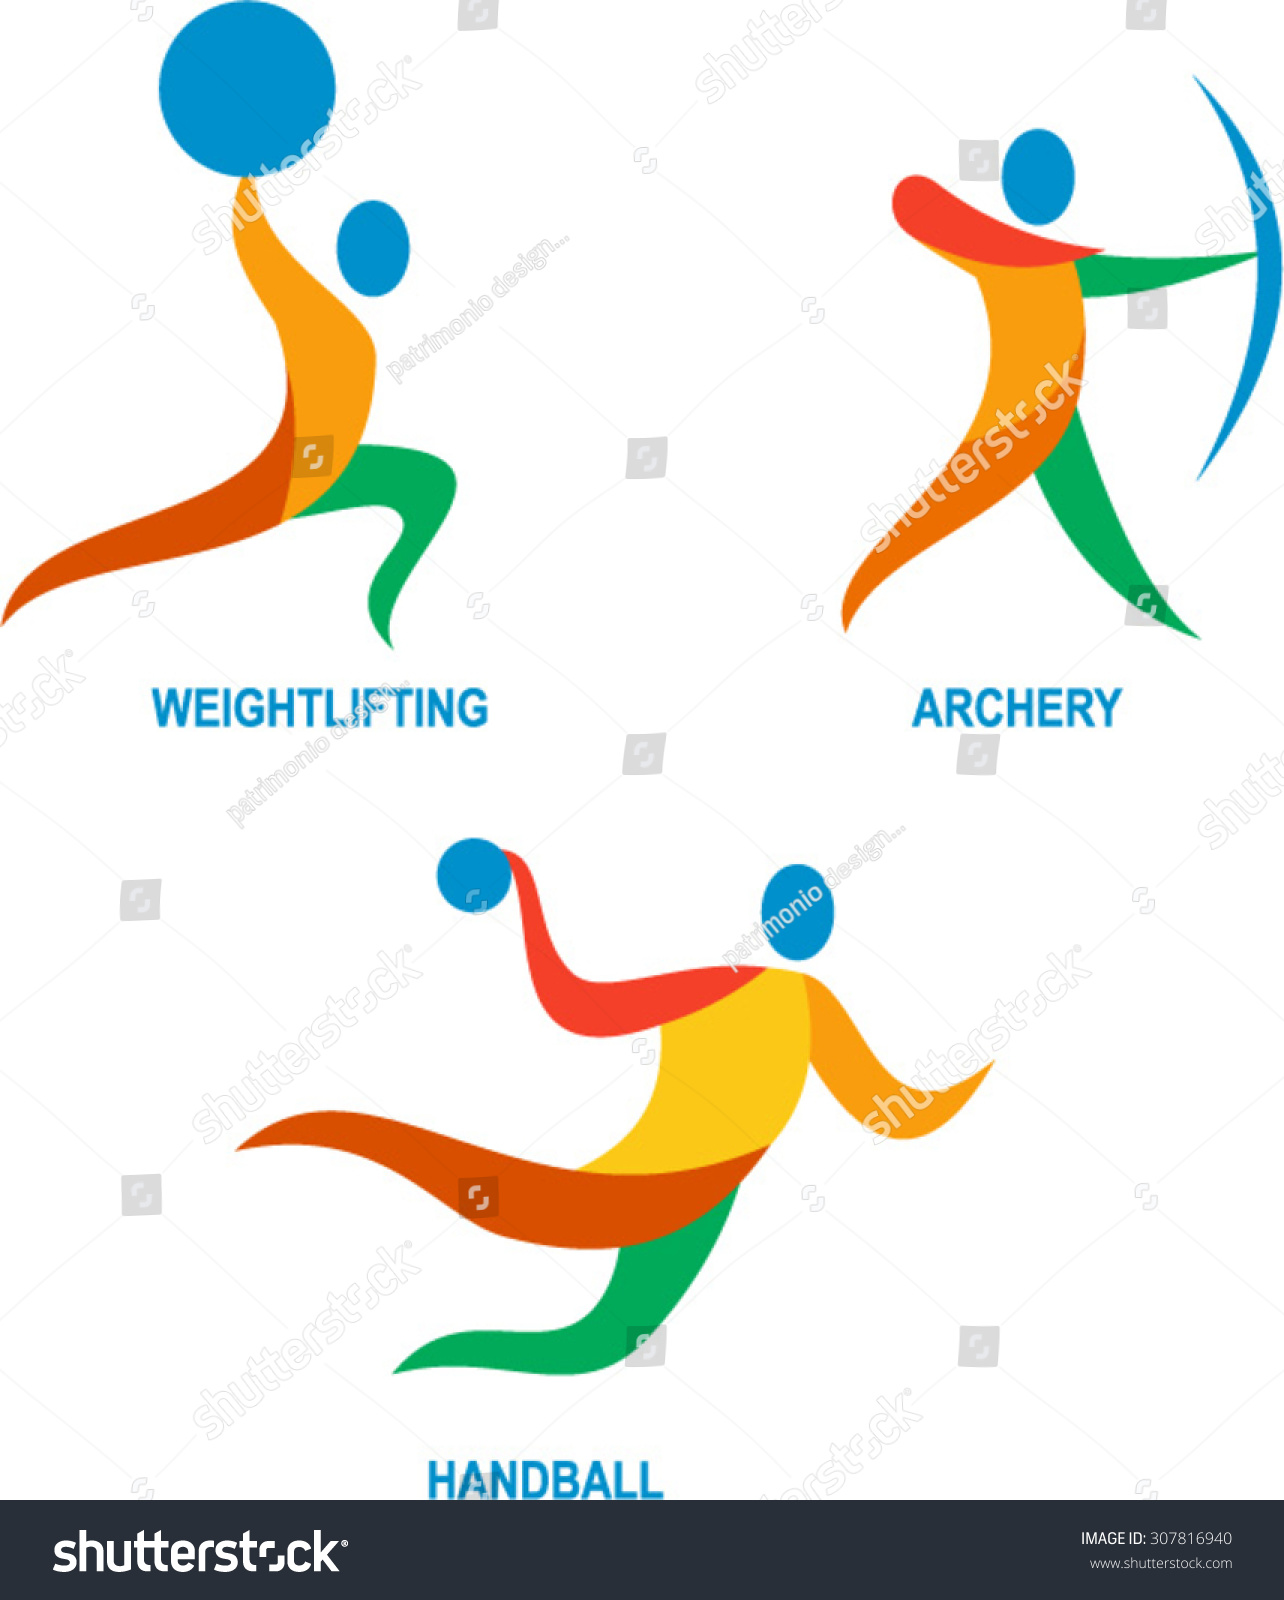 icon illustration showing athlete playing sport stock vector rh shutterstock com